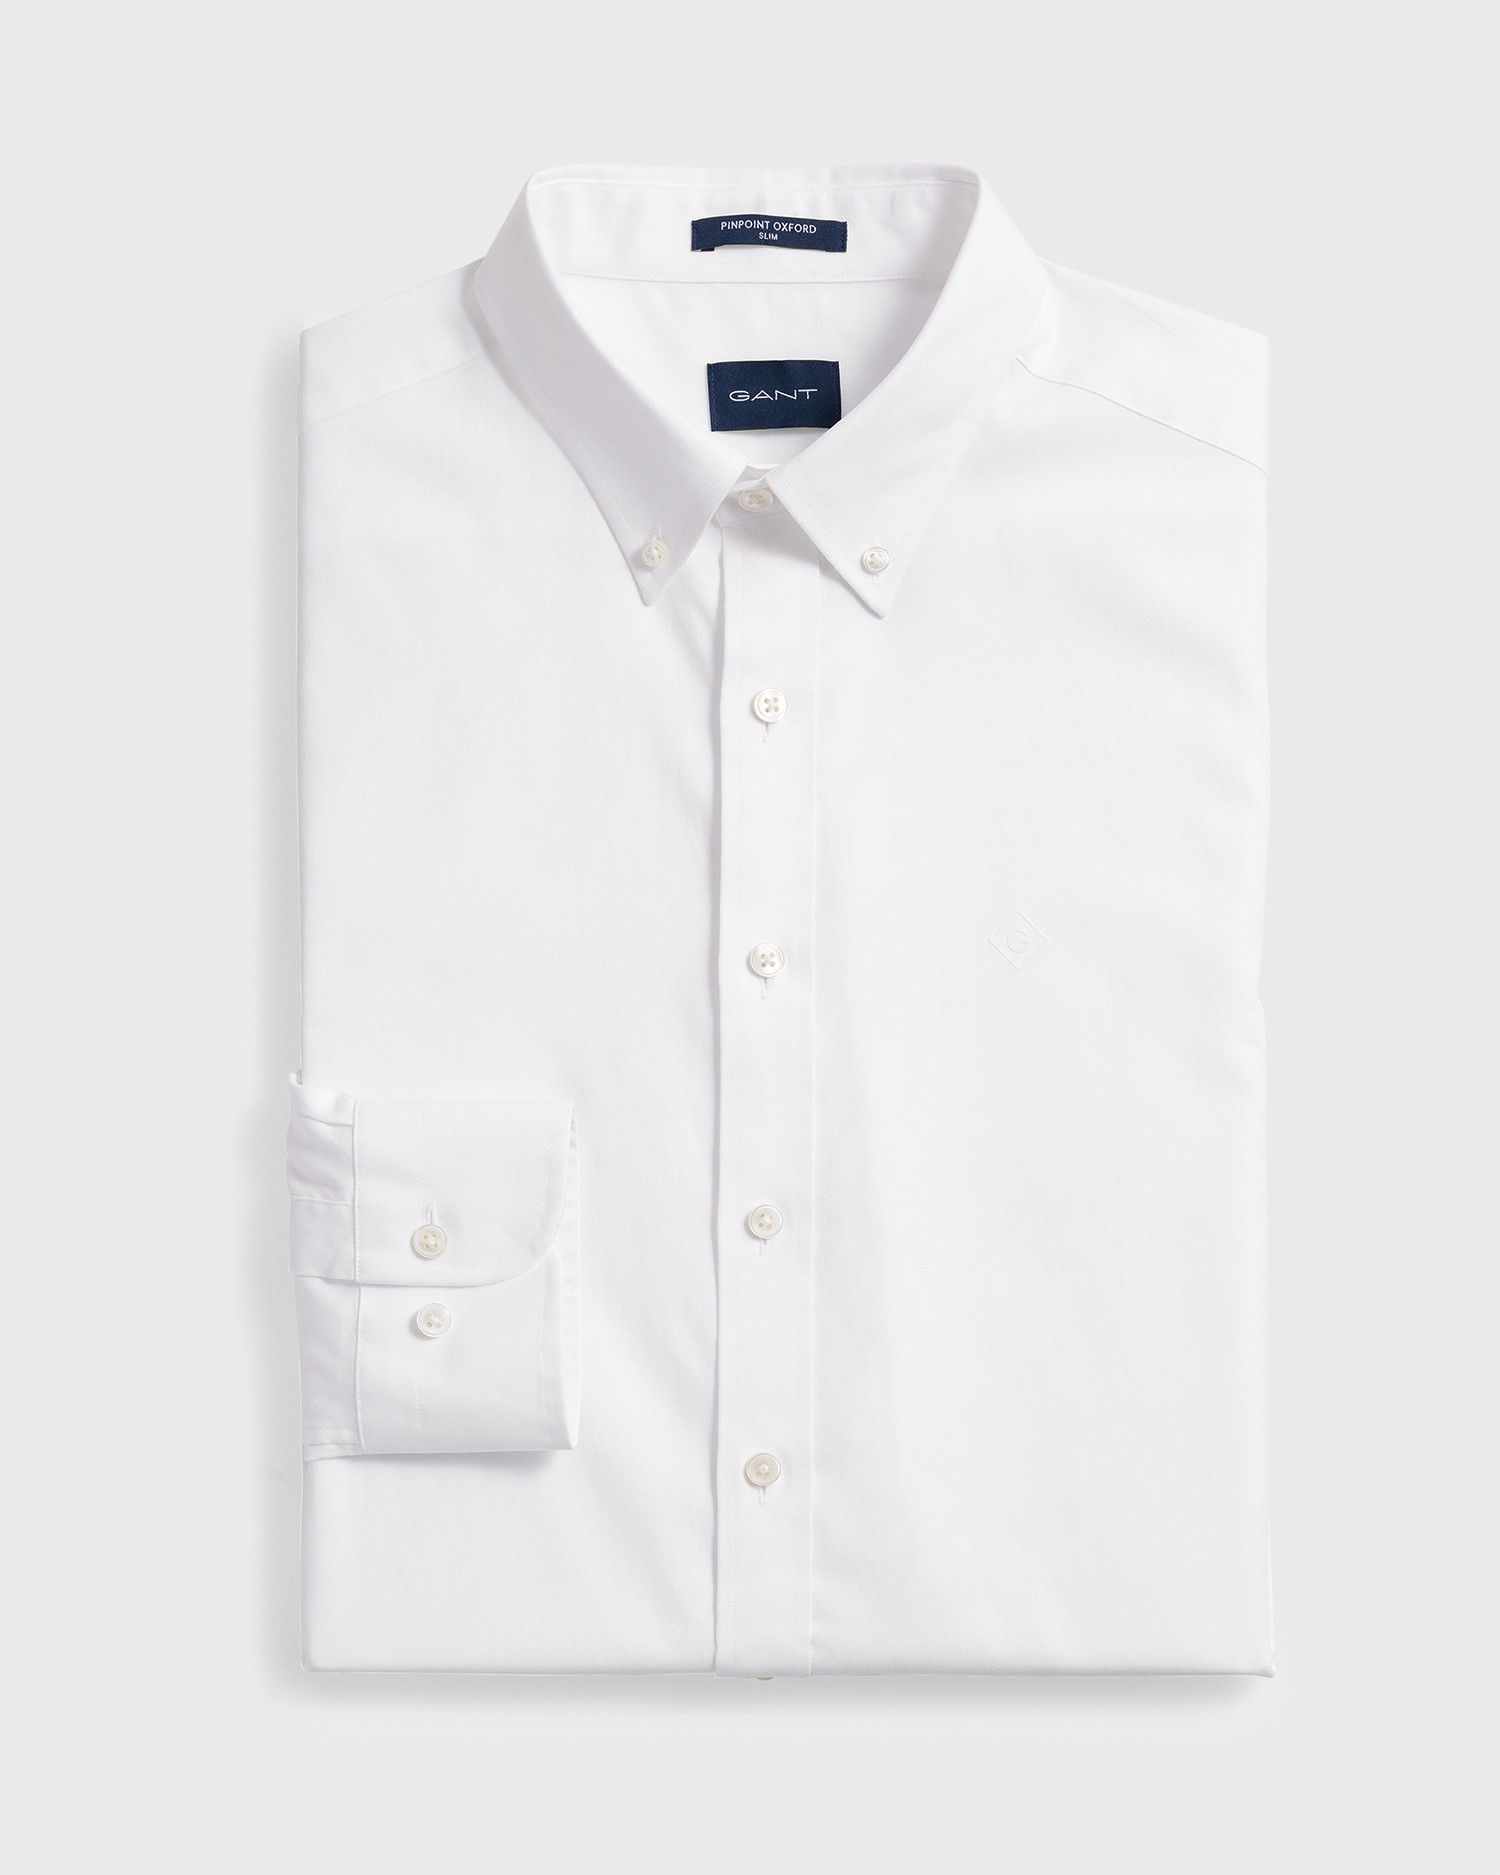 GANT Men's Pinpoint Oxford Slim Fit Shirt - 303002